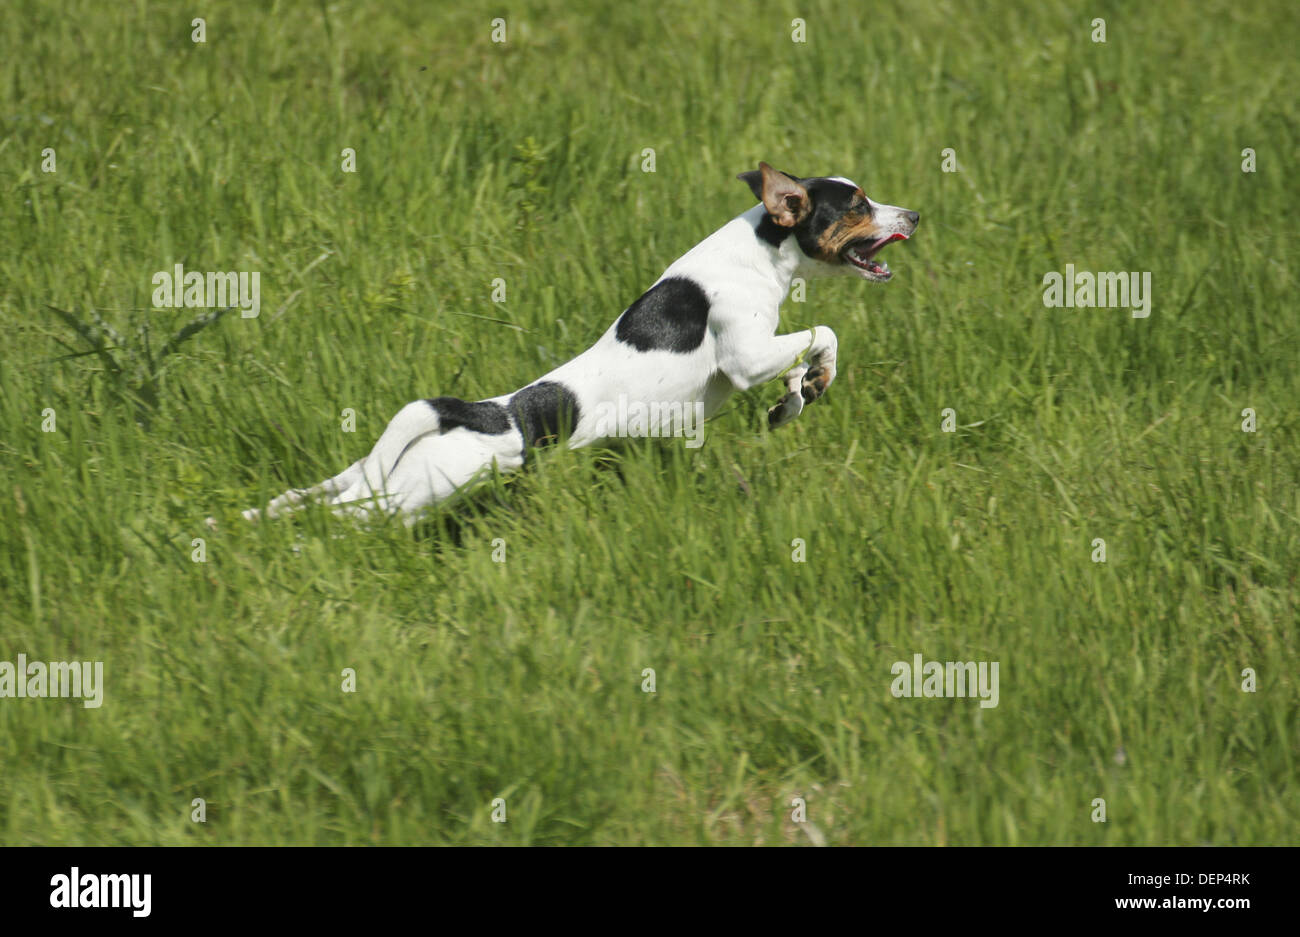 Dog running. Danish Swedish Farmdog. Stock Photo